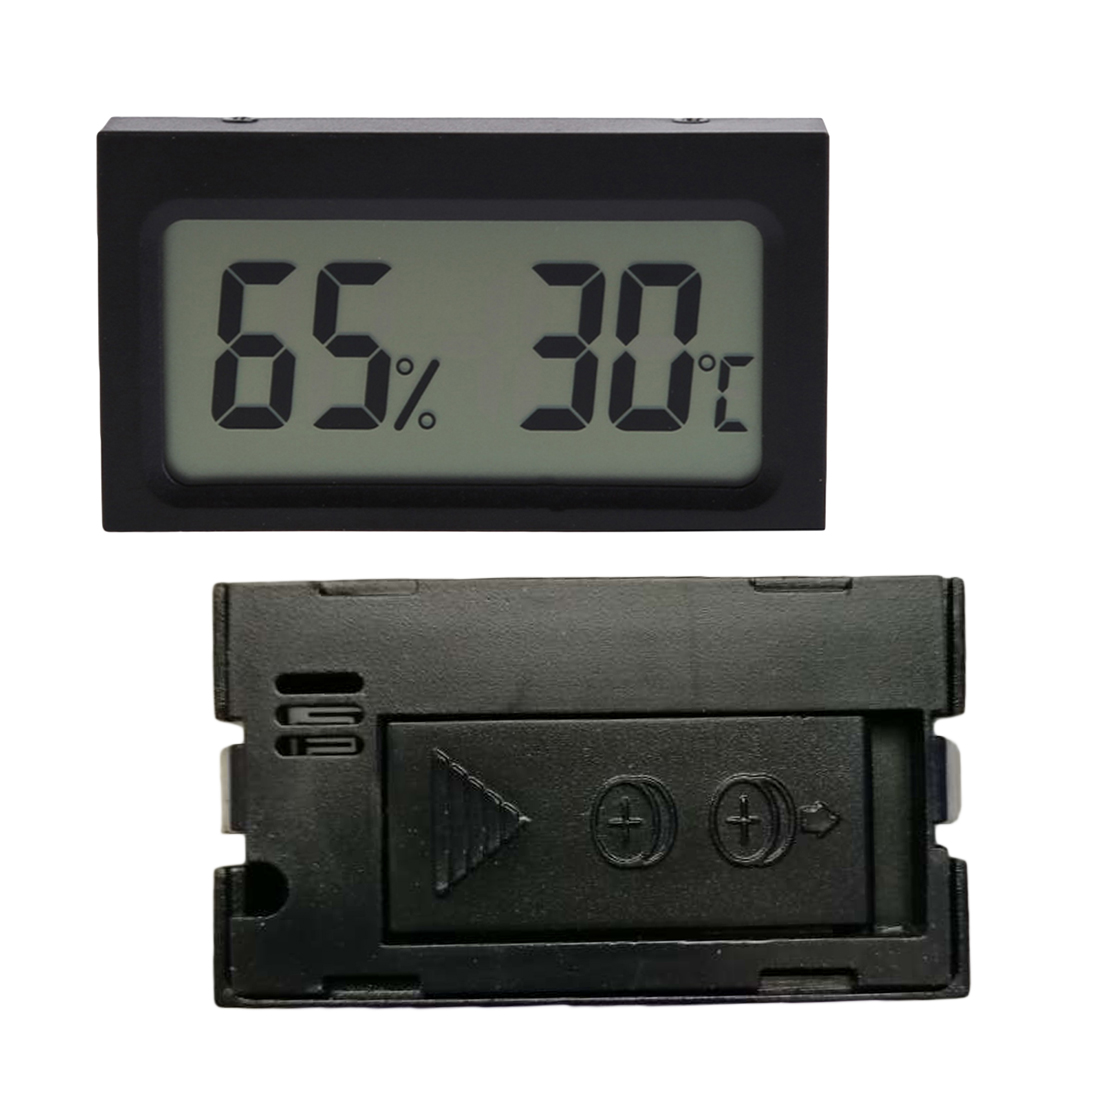 High-accuracy LCD Thermometer Hygrometer Electronic Temperature Humidity Meter Indoor -30C~50C Detector Termometro 20%RH~99%RH